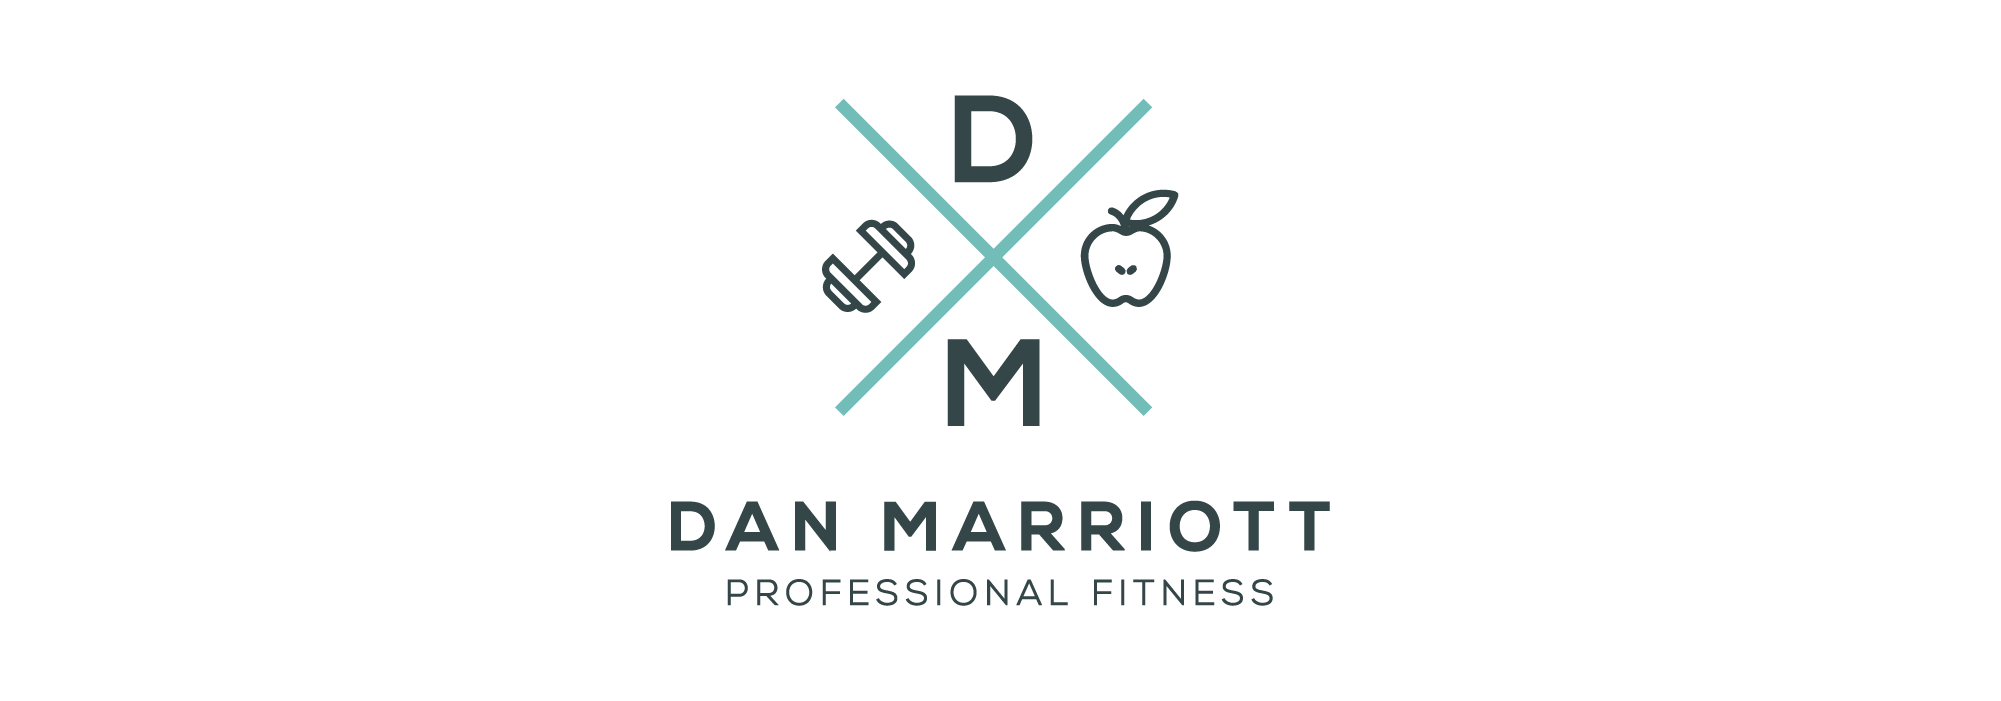 Dan Marriott Logo